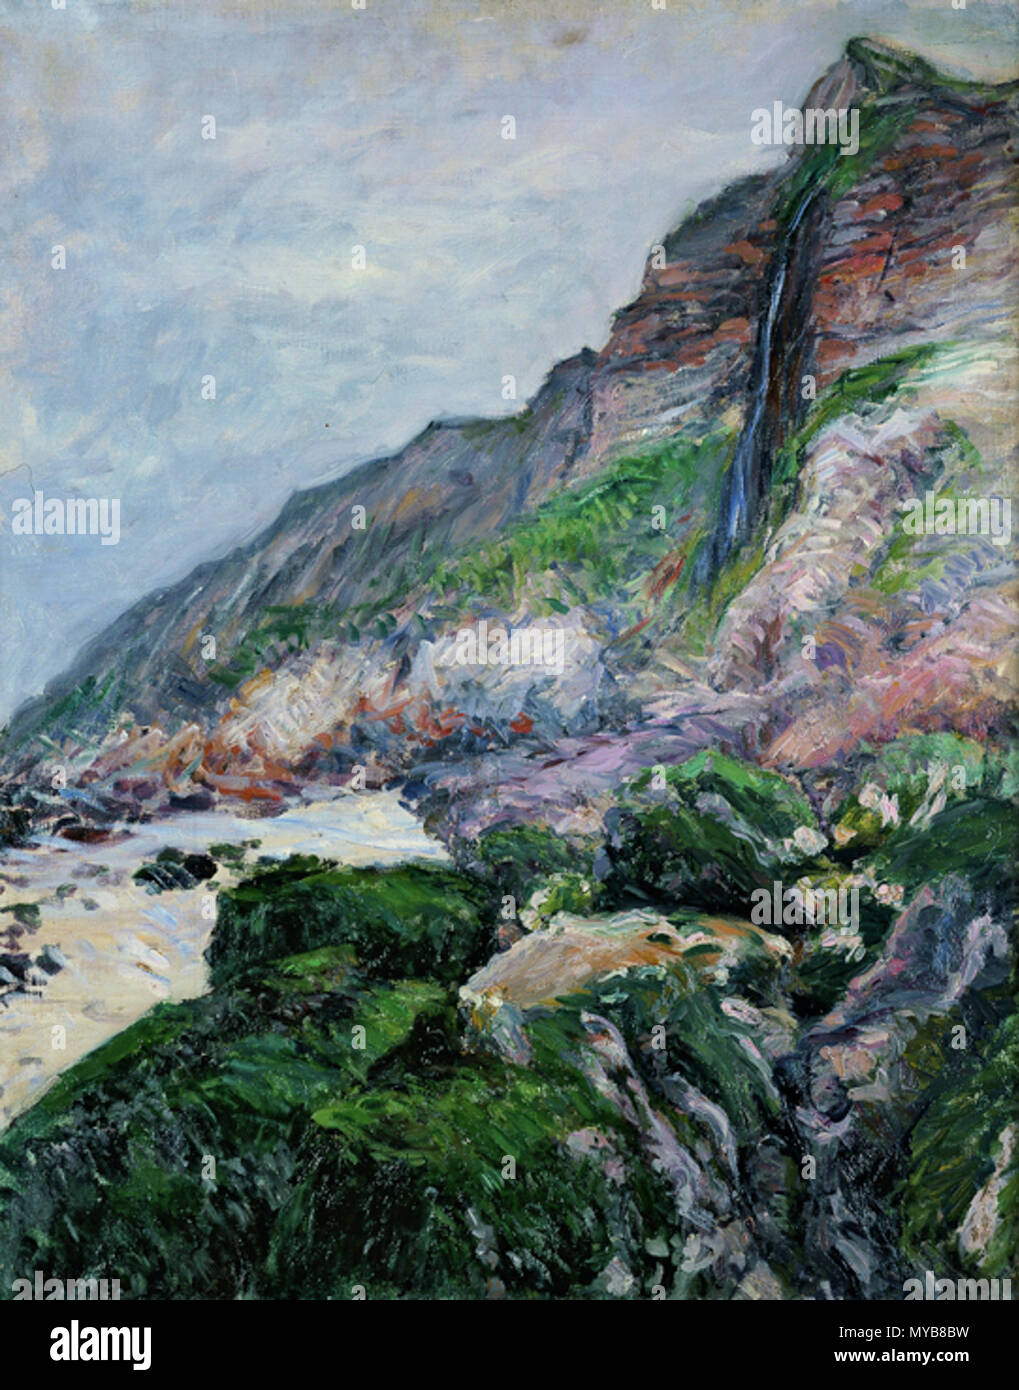 .  English: Painting by Gustave Caillebotte, (French impressionist, 1848–1894) entitled Cliffs in Normandy, 1880. Oil on canvas, 28 3/4 x 23 5/8 in. (73 x 60 cm). Private collection . 22 February 2013, 11:06:06 87 Brooklyn Caillebotte cliffs-in-normandy - Stock Image